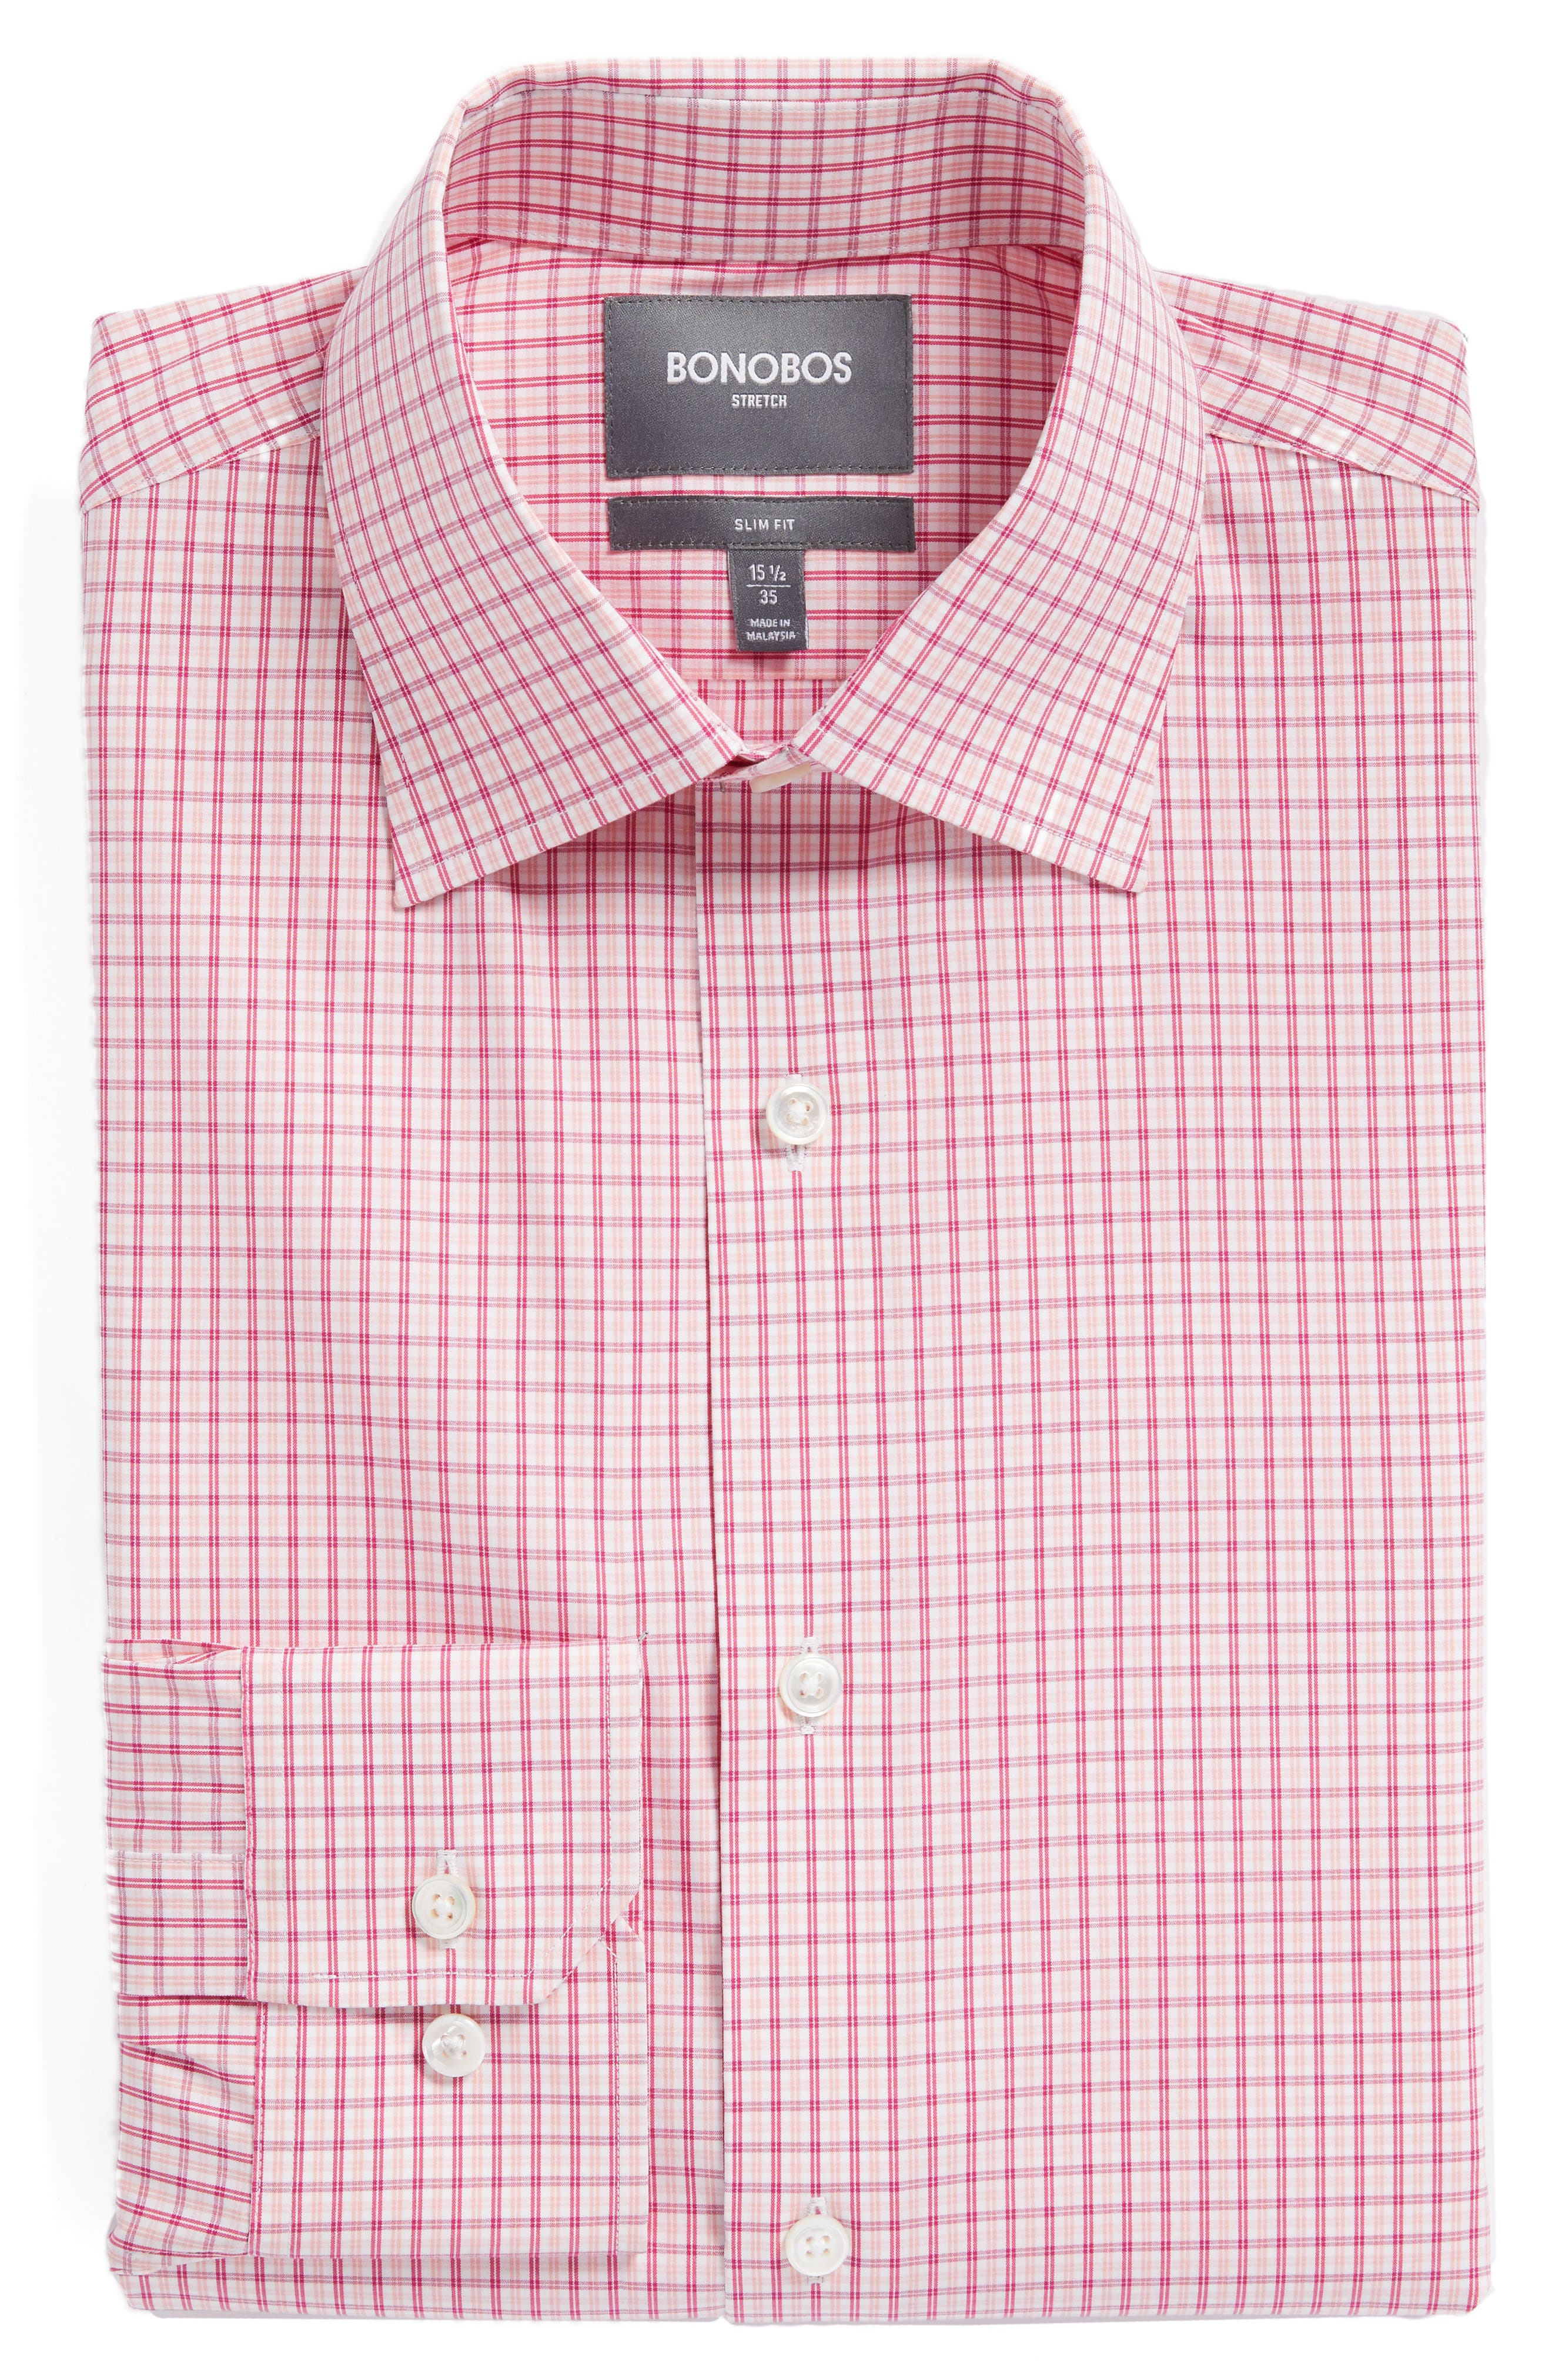 Jetsetter Slim Fit Stretch Check Dress Shirt,                             Alternate thumbnail 6, color,                             Pink Peacock